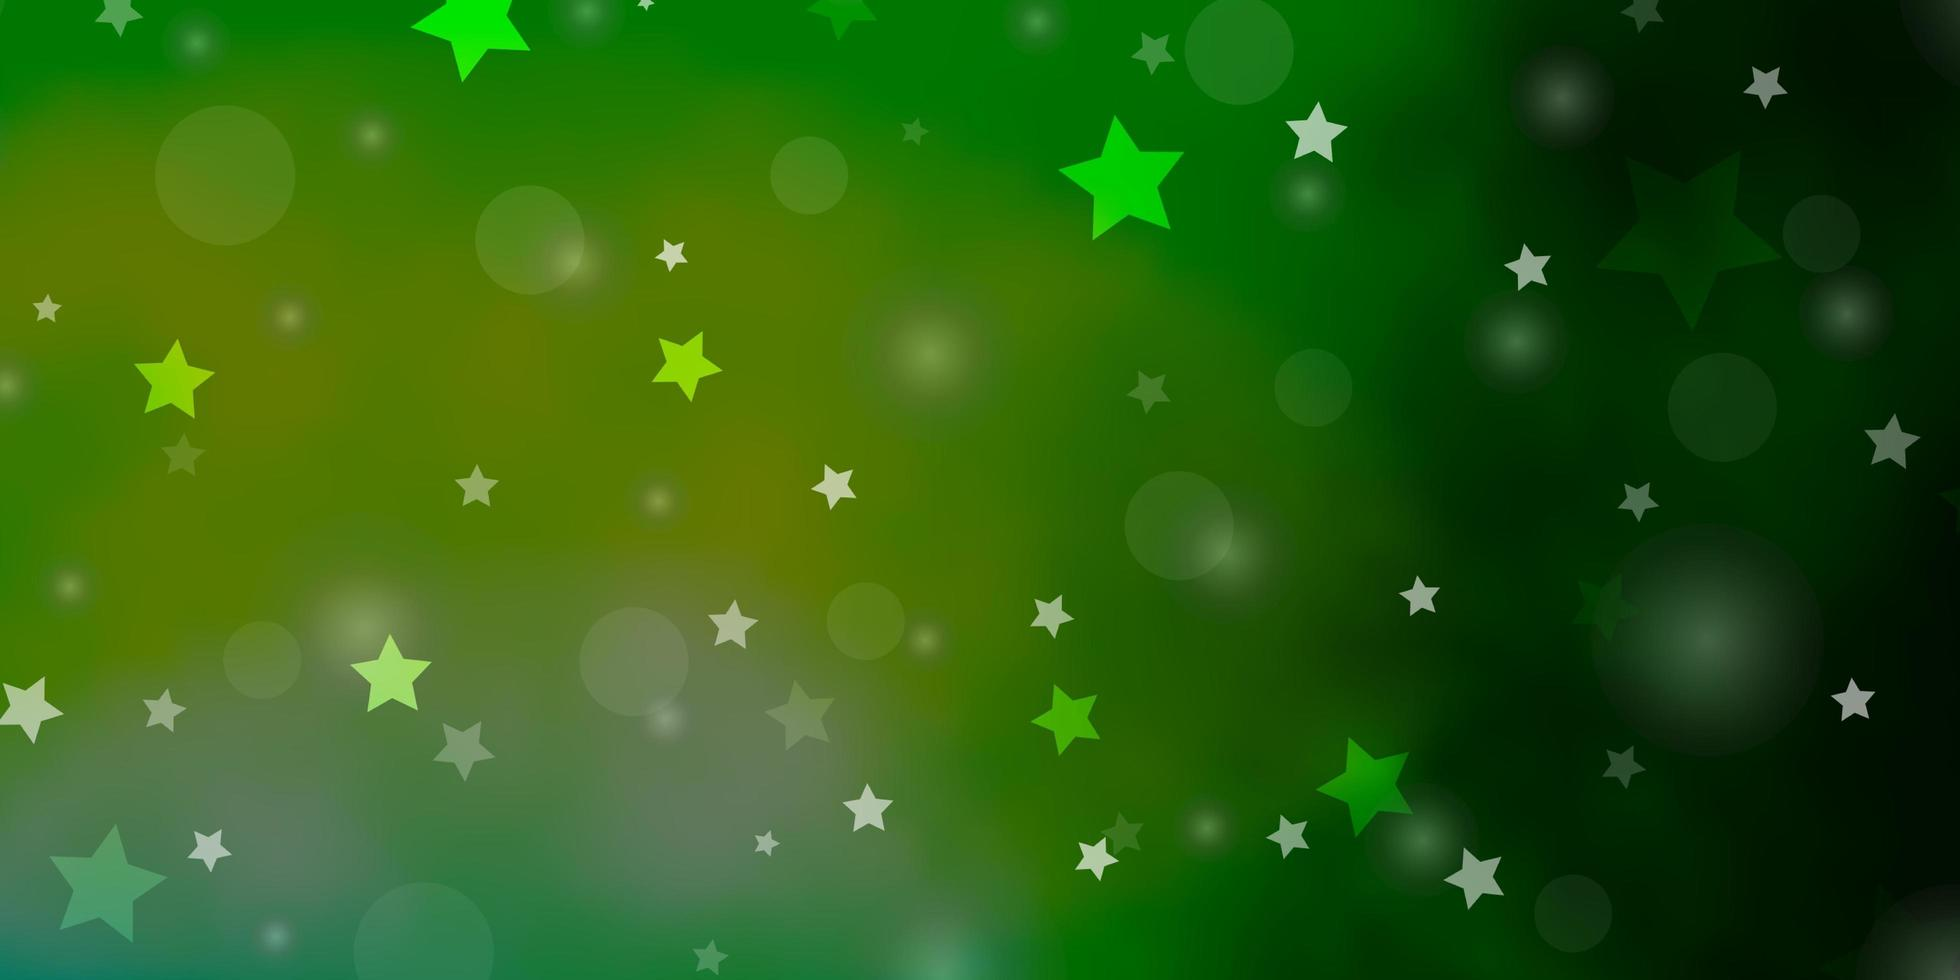 Light Green background with circles, stars. vector